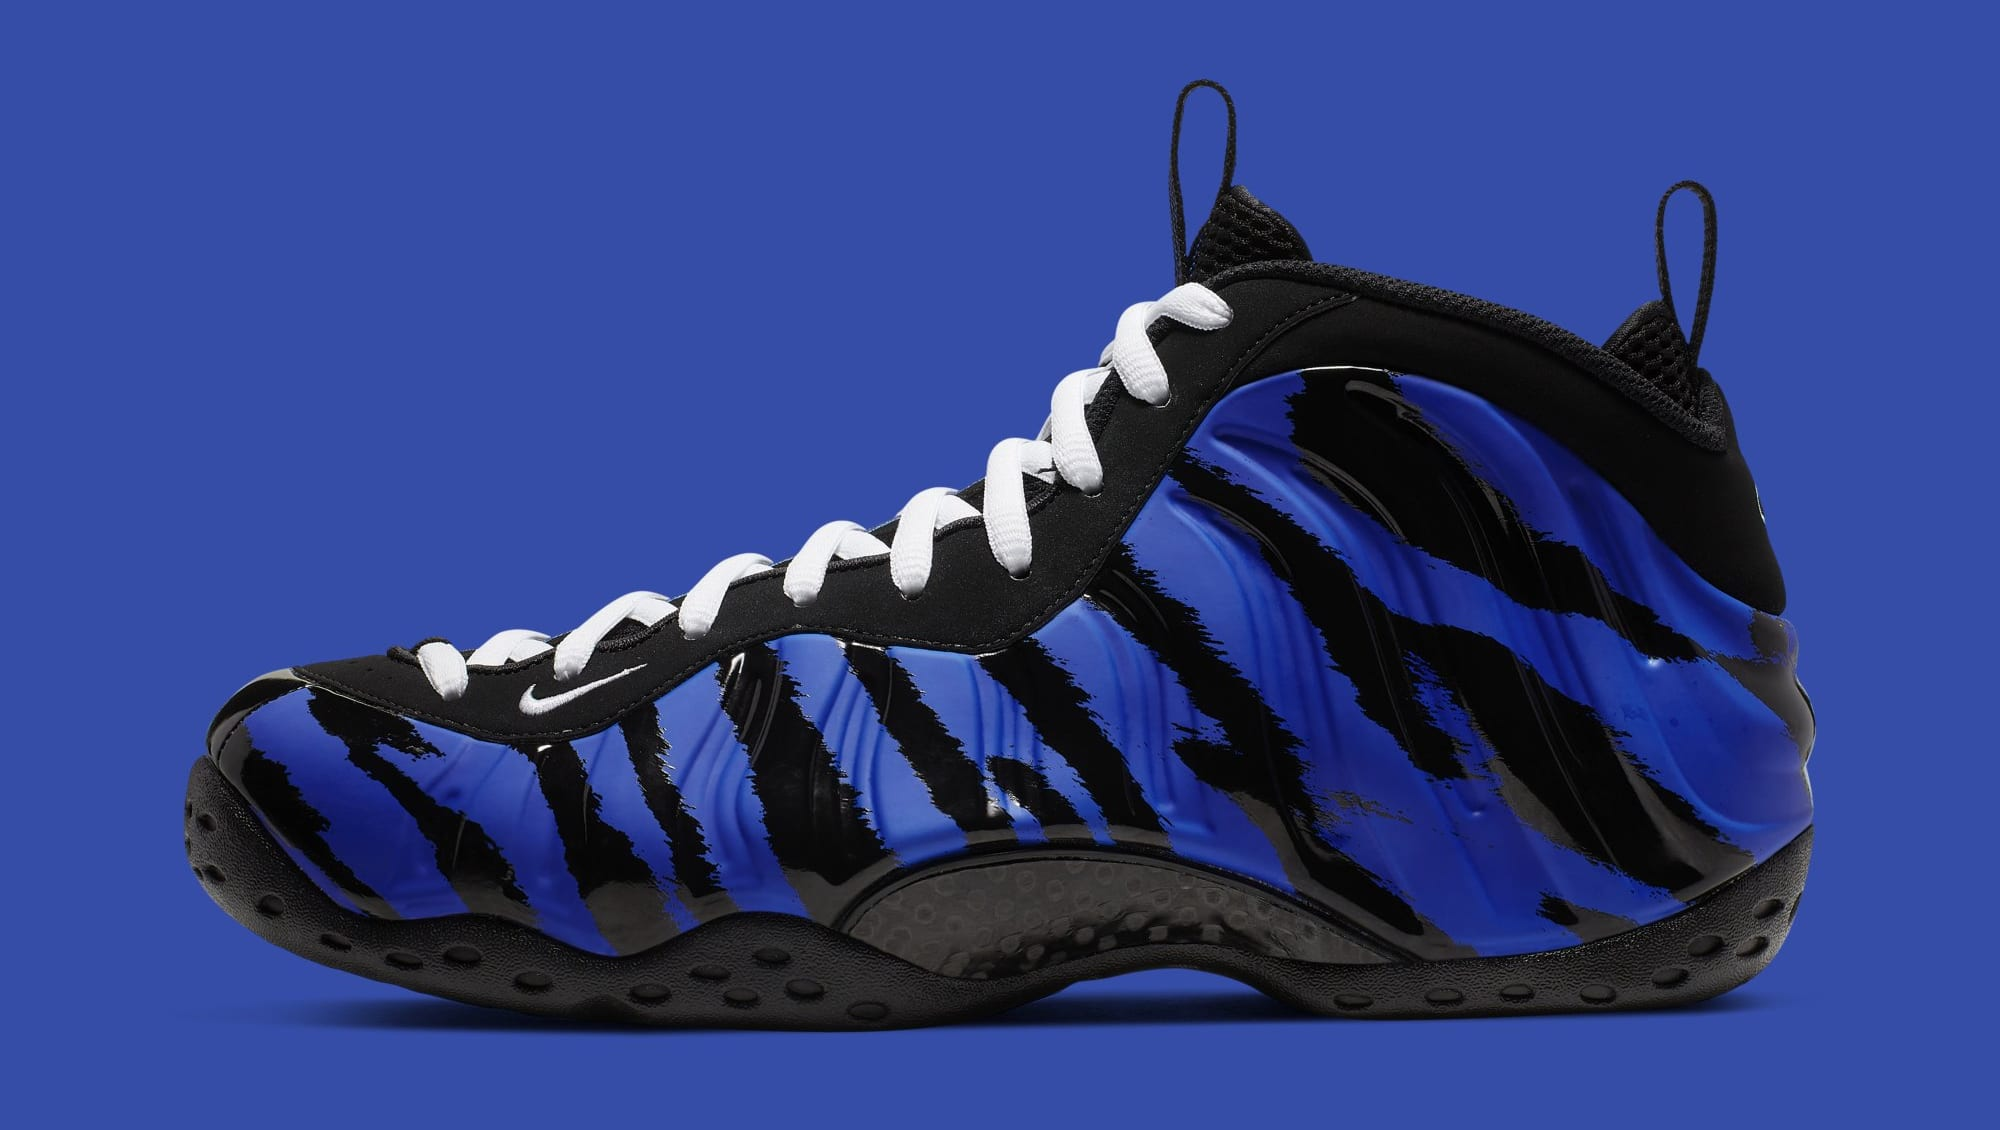 688d3ce48b6 Nike Air Foamposite One  Memphis Tigers  Release Date Mar. 9